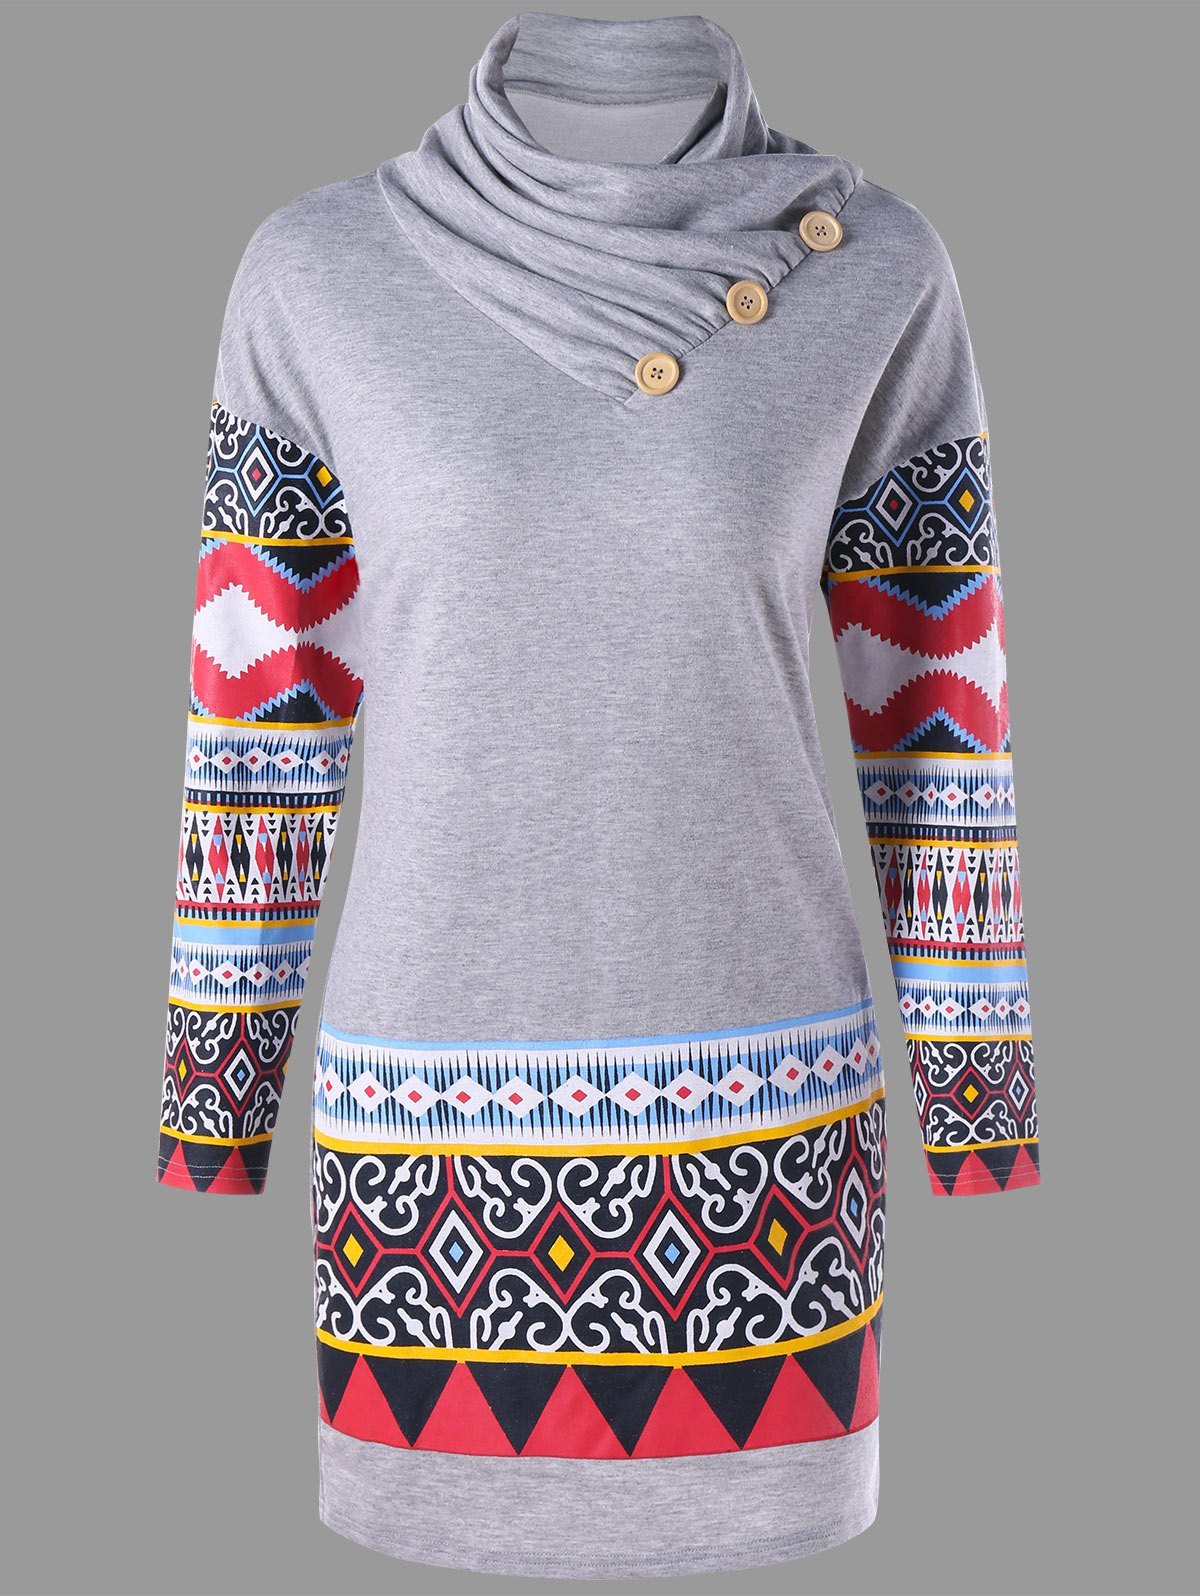 Plus Size Ethnic Print Heap Collar Long Sleeve DressWOMEN<br><br>Size: 5XL; Color: GRAY; Style: Casual; Material: Polyester,Spandex; Silhouette: Bodycon; Dresses Length: Mini; Neckline: Heaps Collar; Sleeve Length: Long Sleeves; Pattern Type: Tribal Print; With Belt: No; Season: Fall,Spring; Weight: 0.5070kg; Package Contents: 1 x Dress;